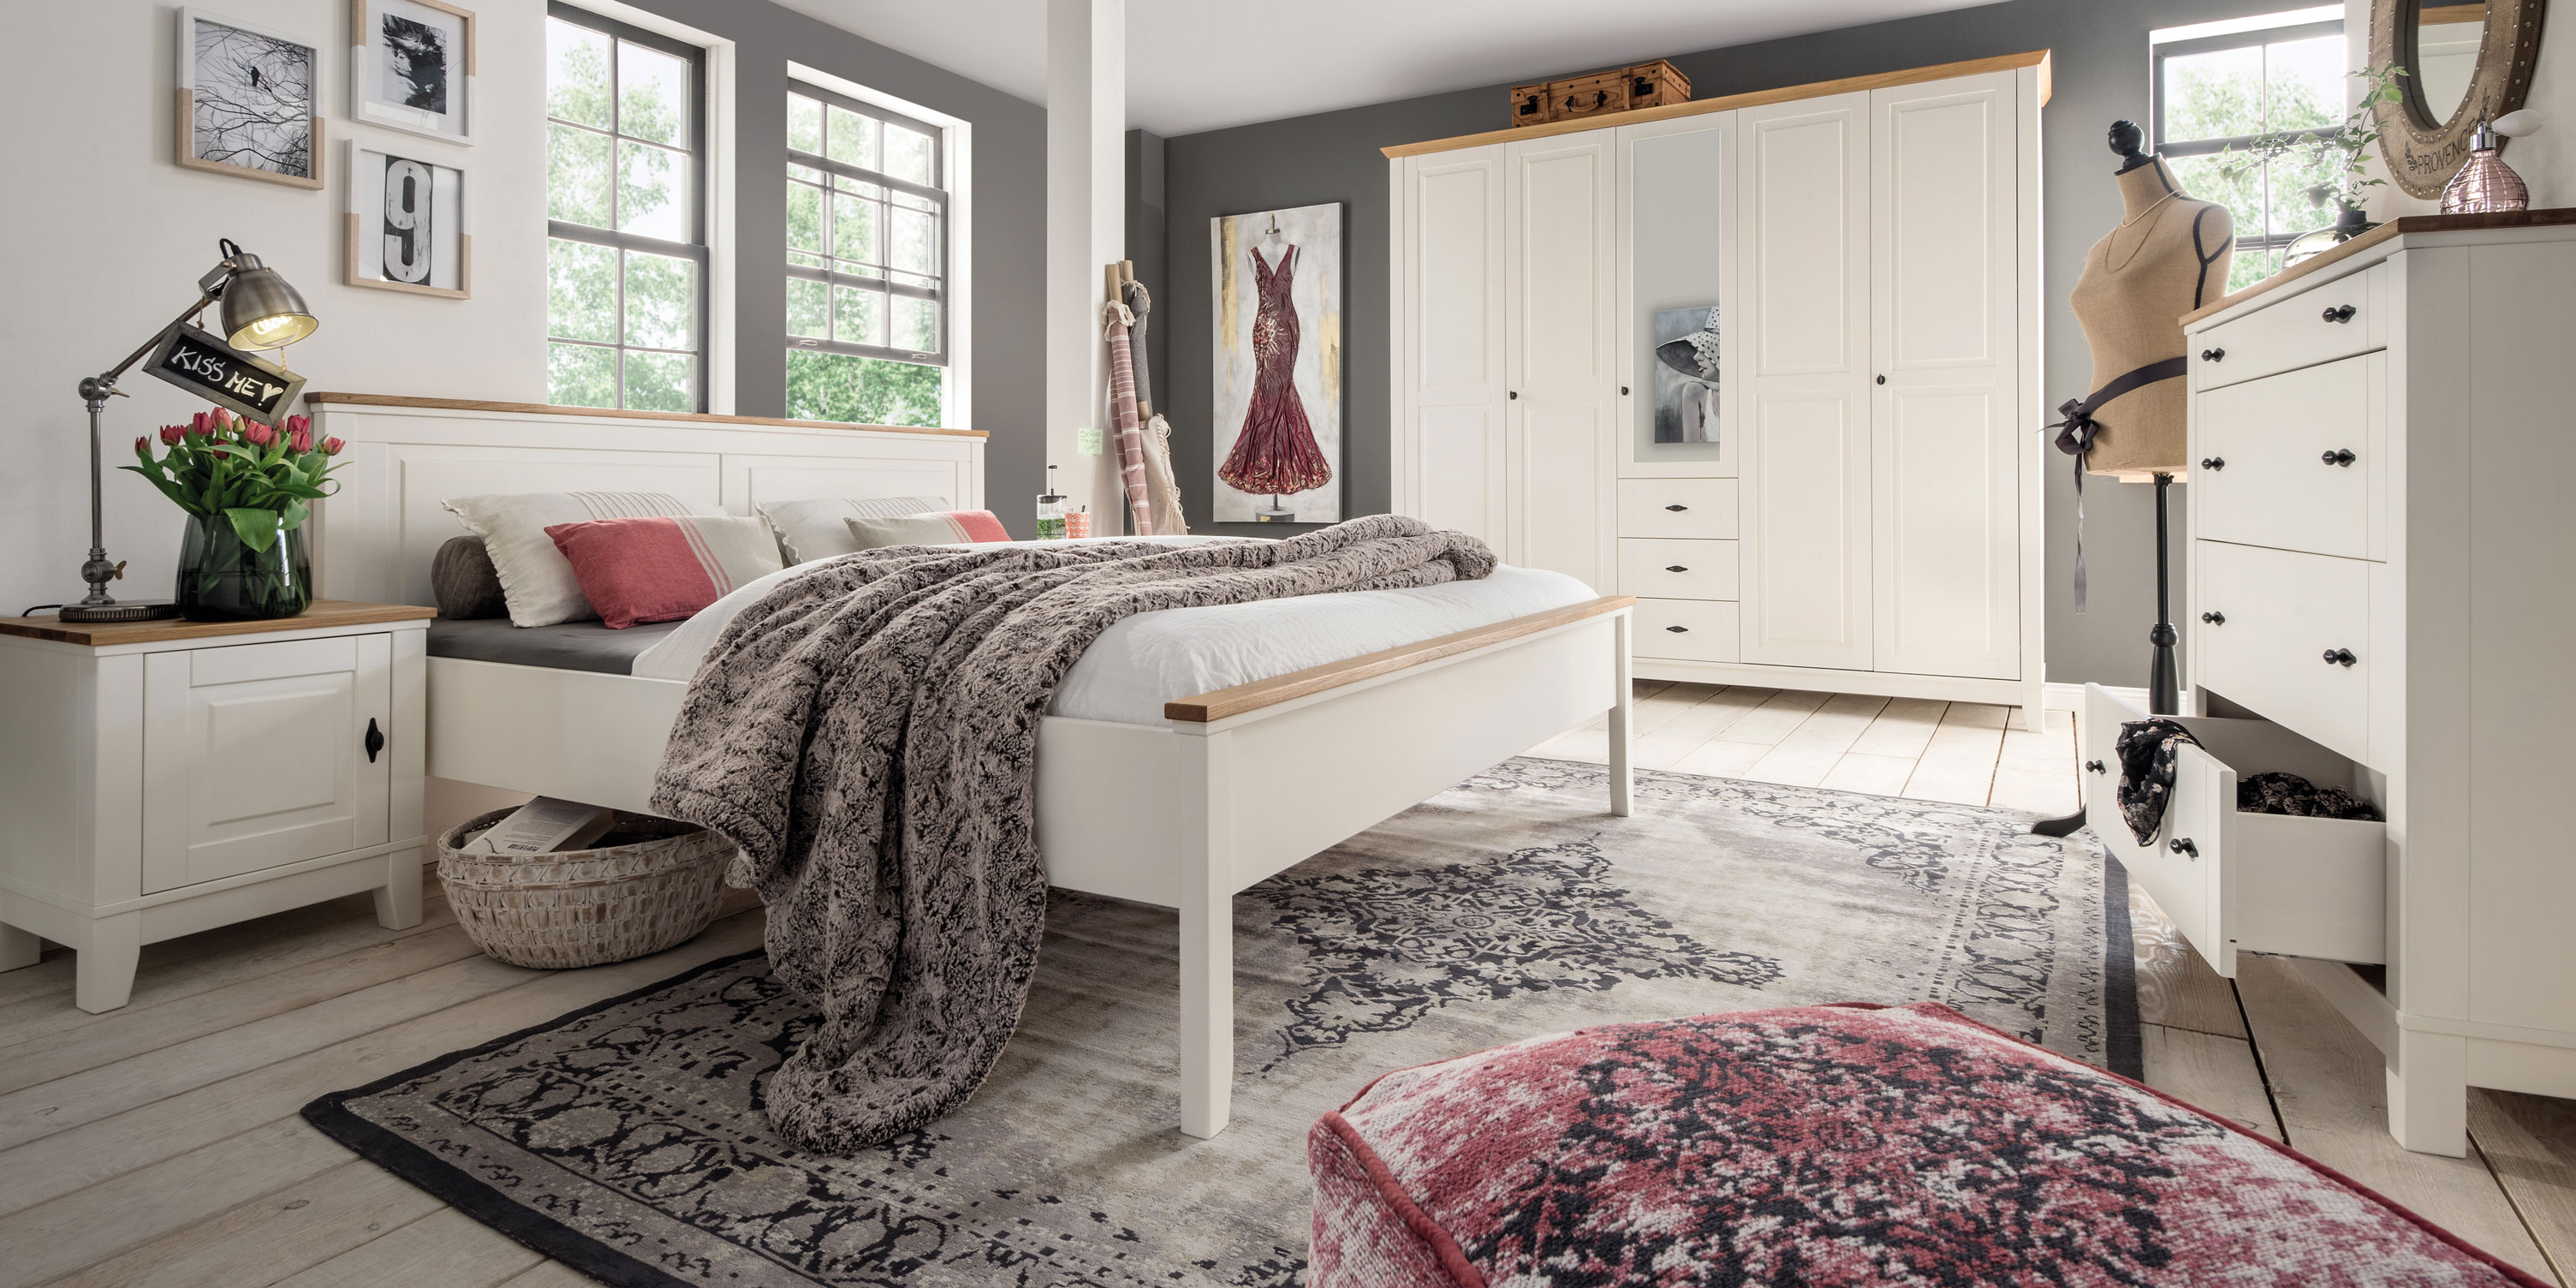 emilia nachtkommode kiefer creme eiche massiv. Black Bedroom Furniture Sets. Home Design Ideas